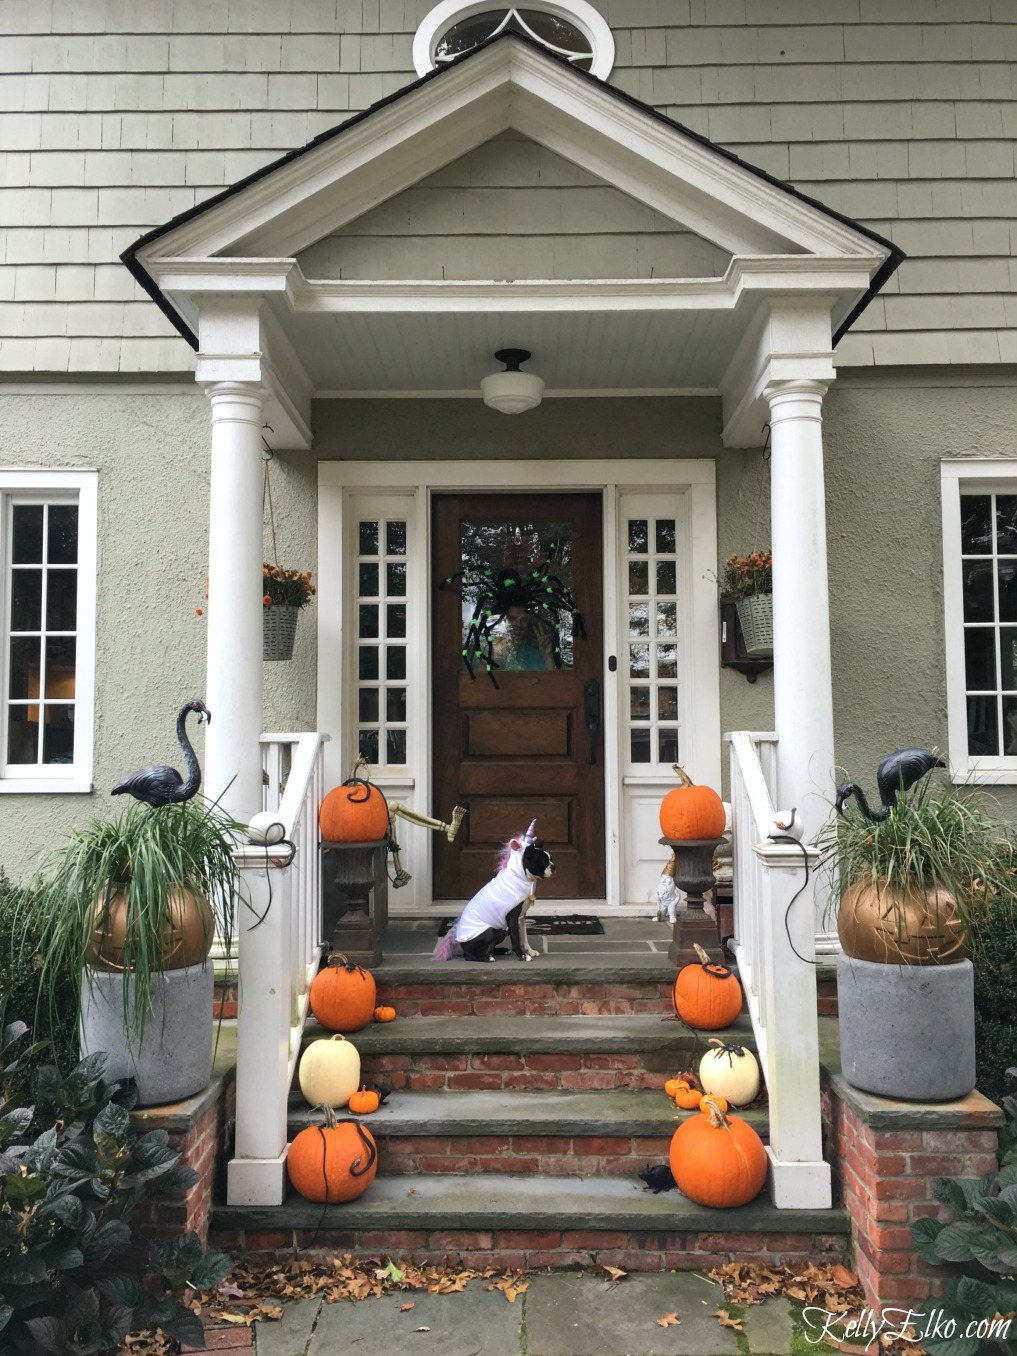 I love this simple Halloween porch and those cute pumpkin planters! kellyelko.com